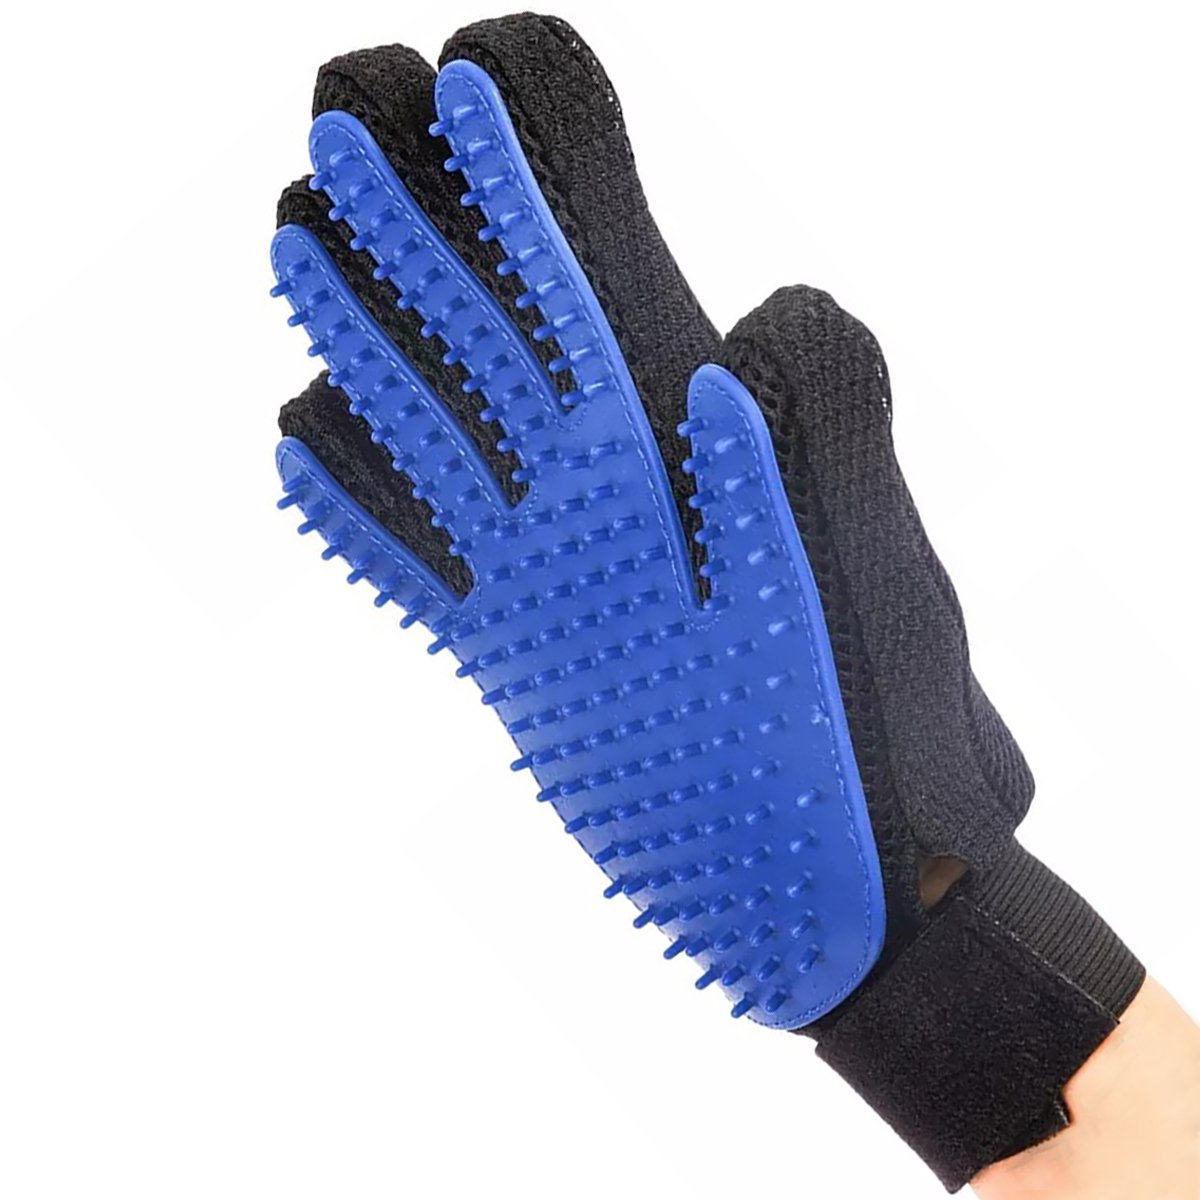 LIANYI Pet Grooming Glove Gentle De-Shedding Brush for Dogs & Cats with Long & Short Fur Hair Removal Mitt Comfortable Massage Tool Dark Blue 1 Pair Your Pet Will Love It HCPET